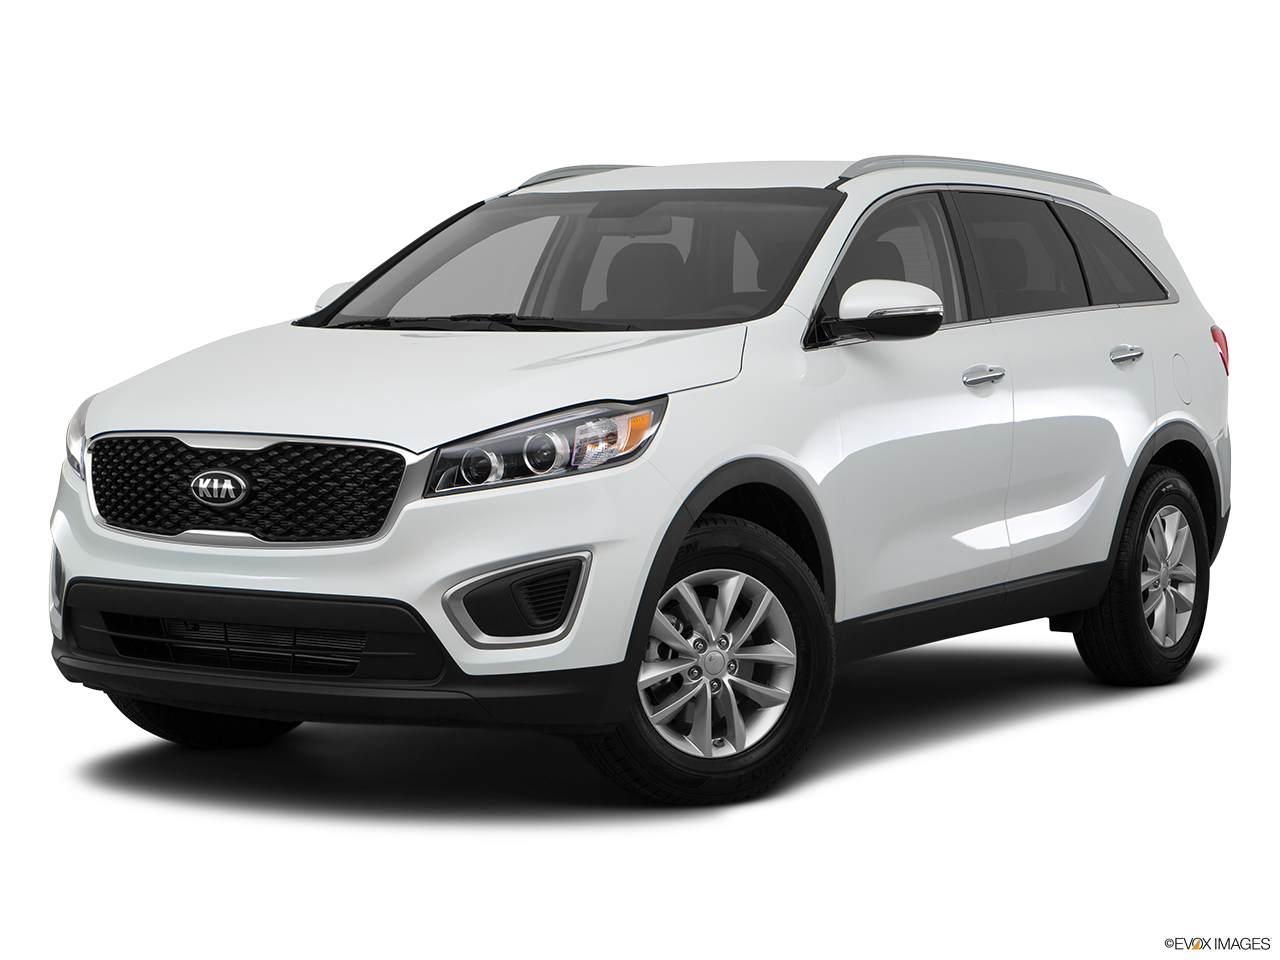 Test Drive the 2017 KIA Sorento at KIA Cerritos serving LA and OC